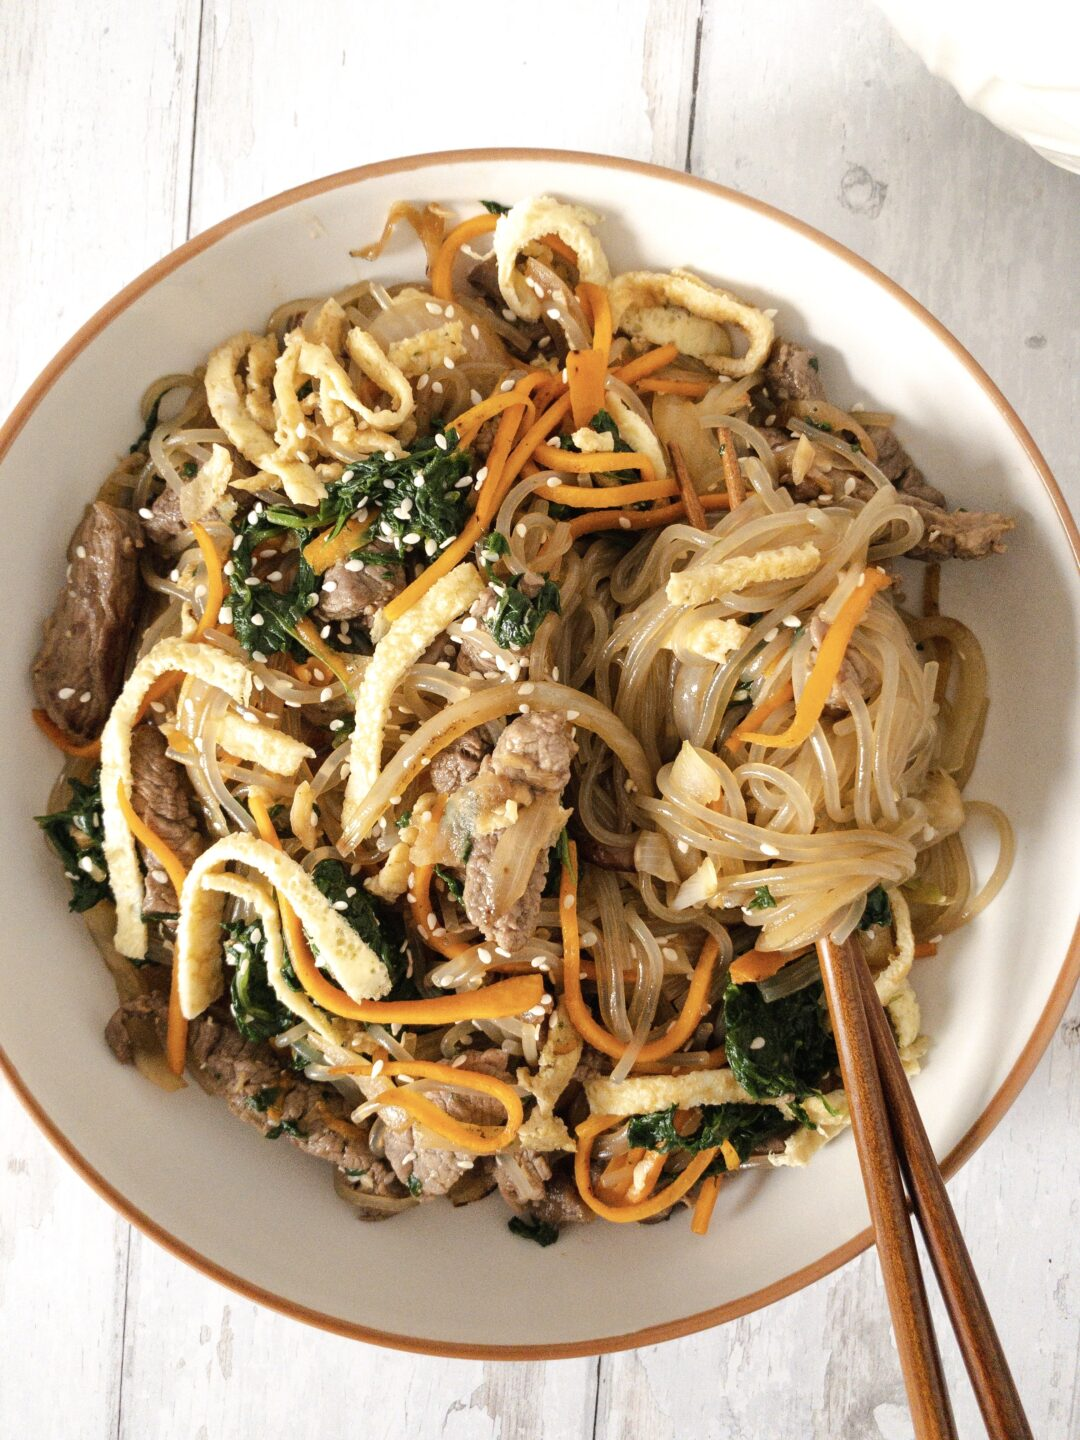 Japchae (Korean Glass Noodle Stir Fry) Recipe